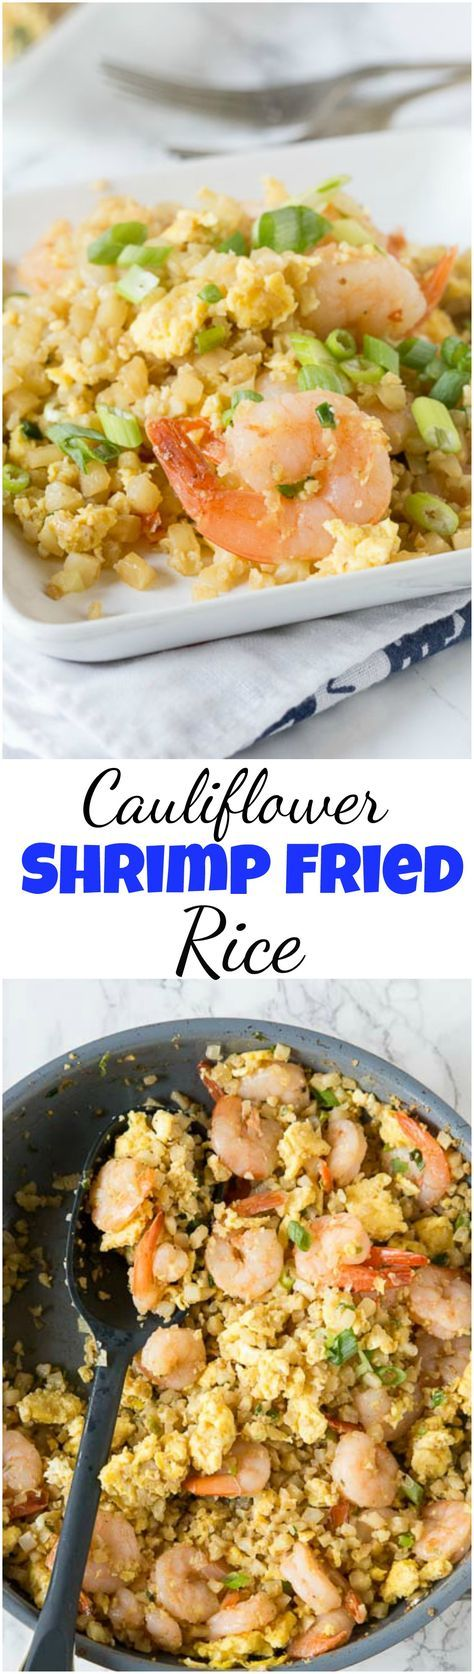 Cauliflower Shrimp Fried Rice – A healthy version of a Chinese take-out favorite! Ready in minutes and you don't have to feel any guilt about fried rice again! #healthy #lowcarb #cauliflowerrice #betterthantakeout #shrimp